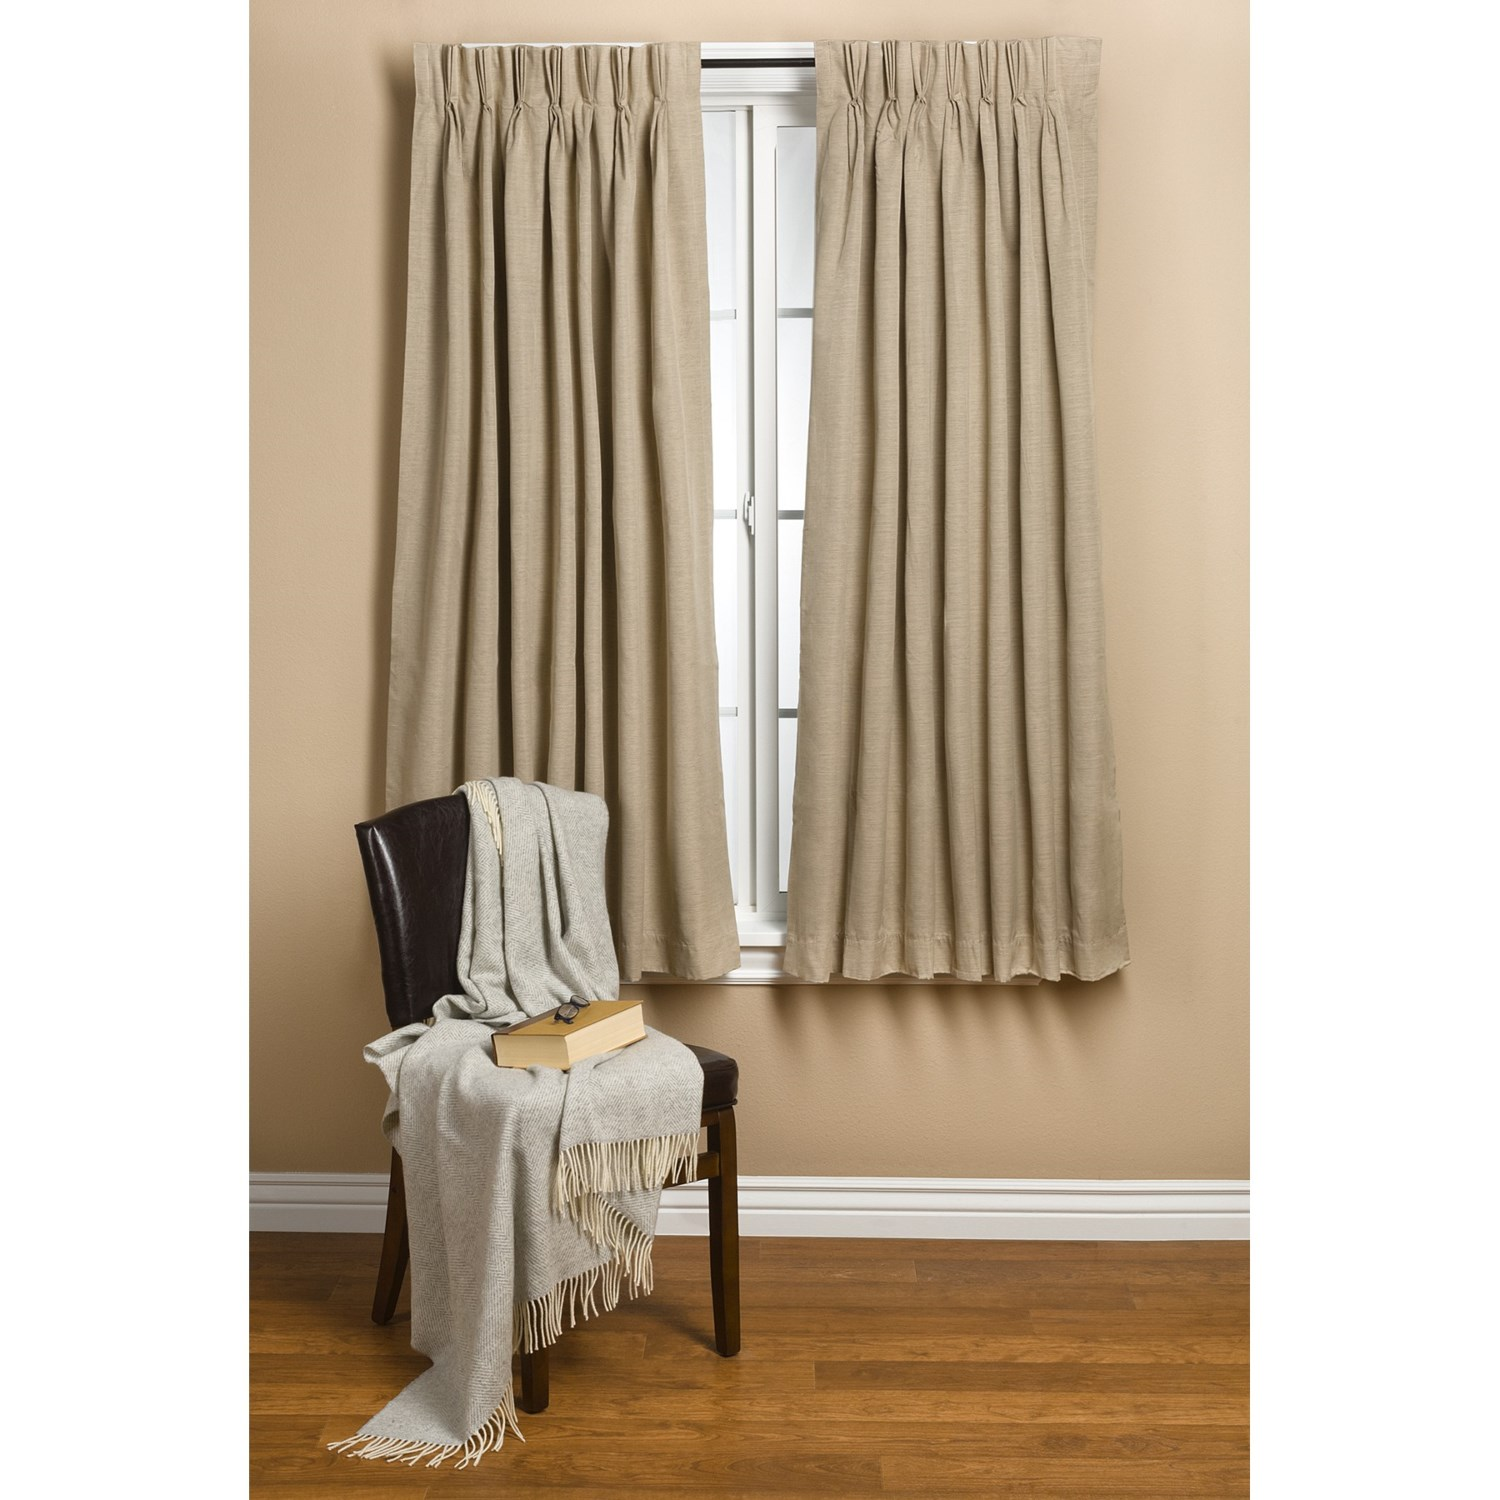 Commonwealth Home Fashions Hotel Chic Blackout Curtains 96x84 Pinch Pleat Save 80